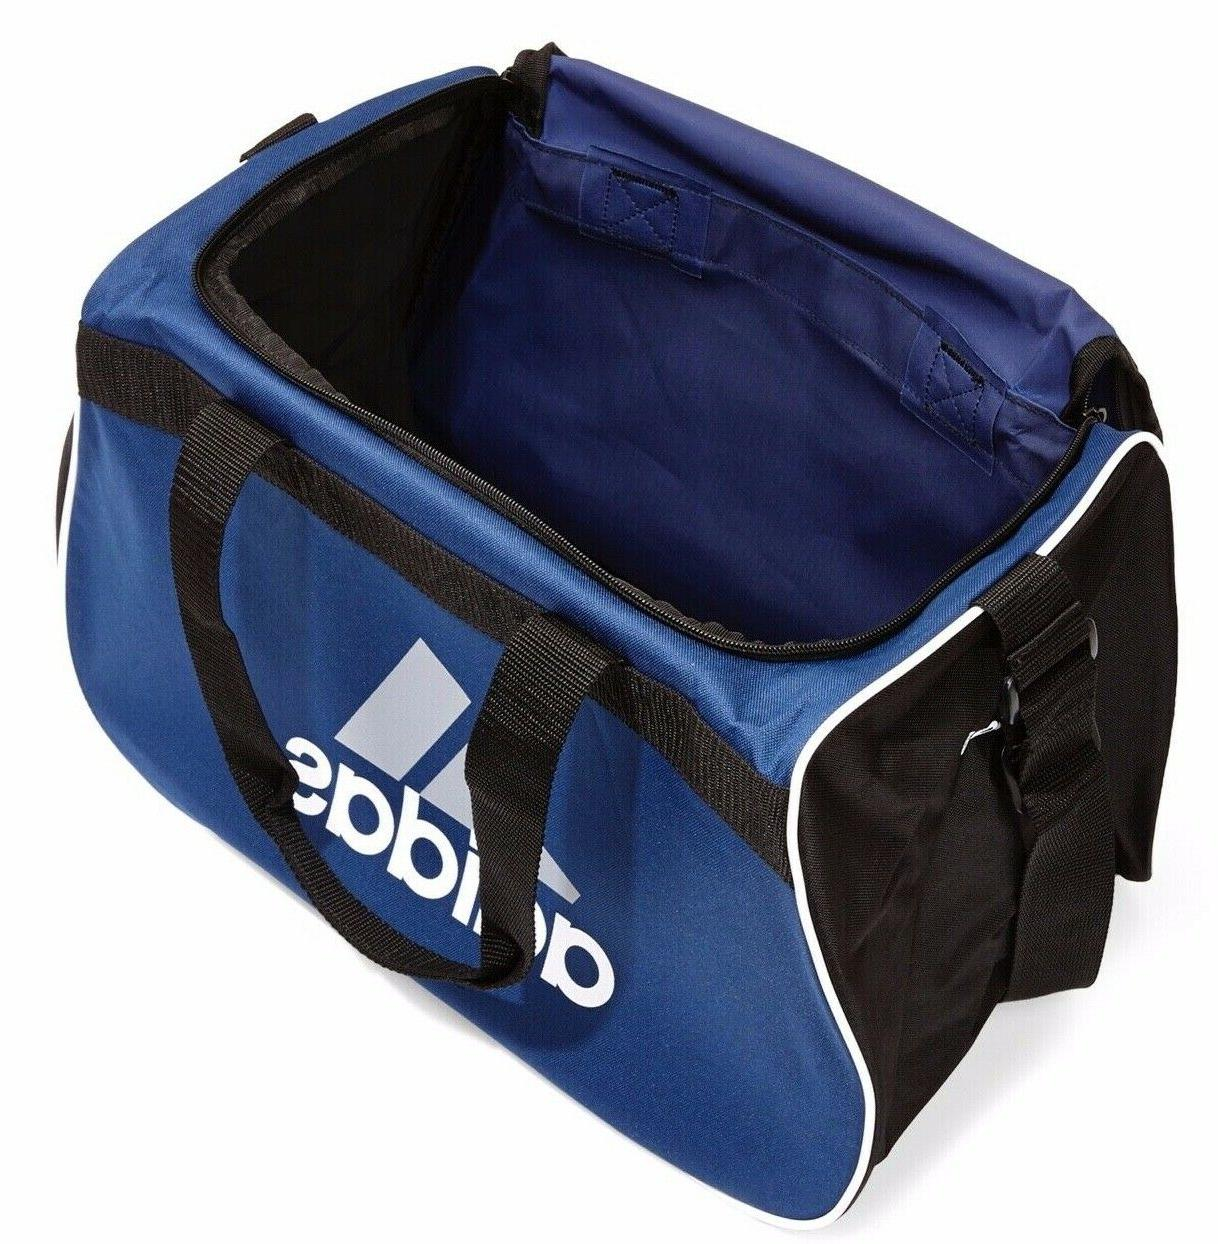 ADIDAS Diablo Duffel BLUE Sports Gym Bag NEW